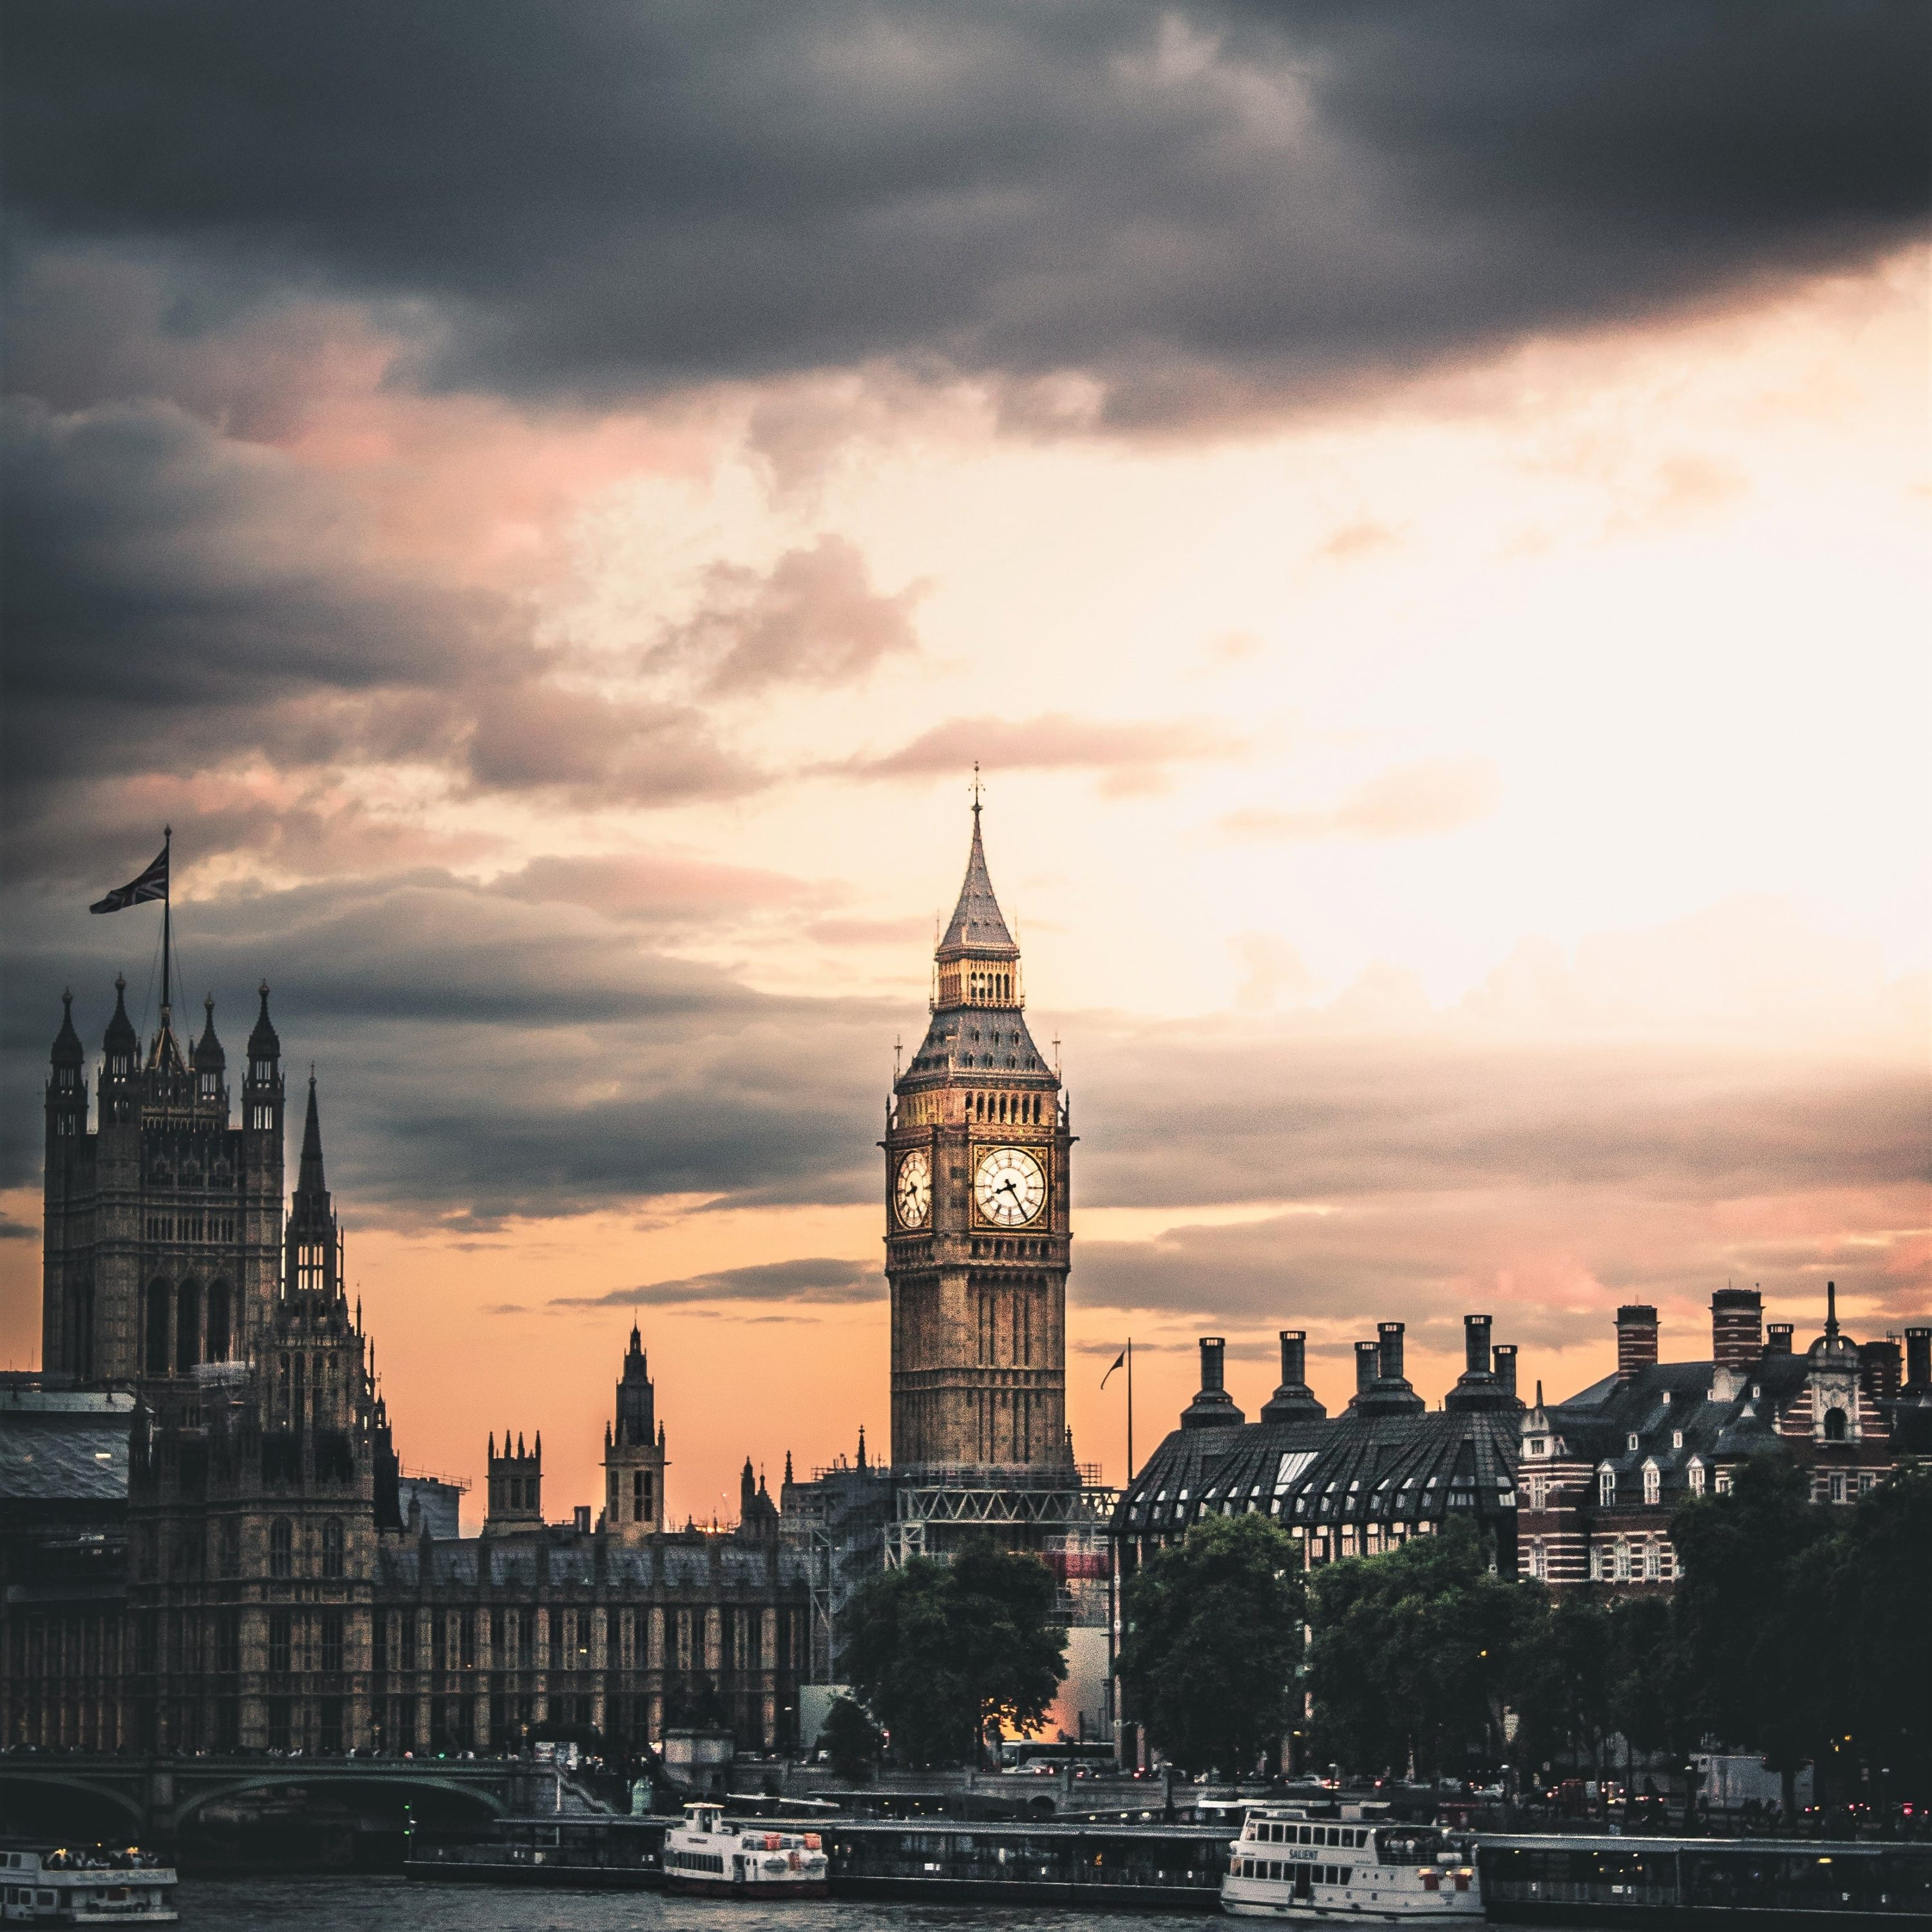 A gloomy, foreboding image of Big Ben to symbolise whether the creative industry is heading out of London and up north